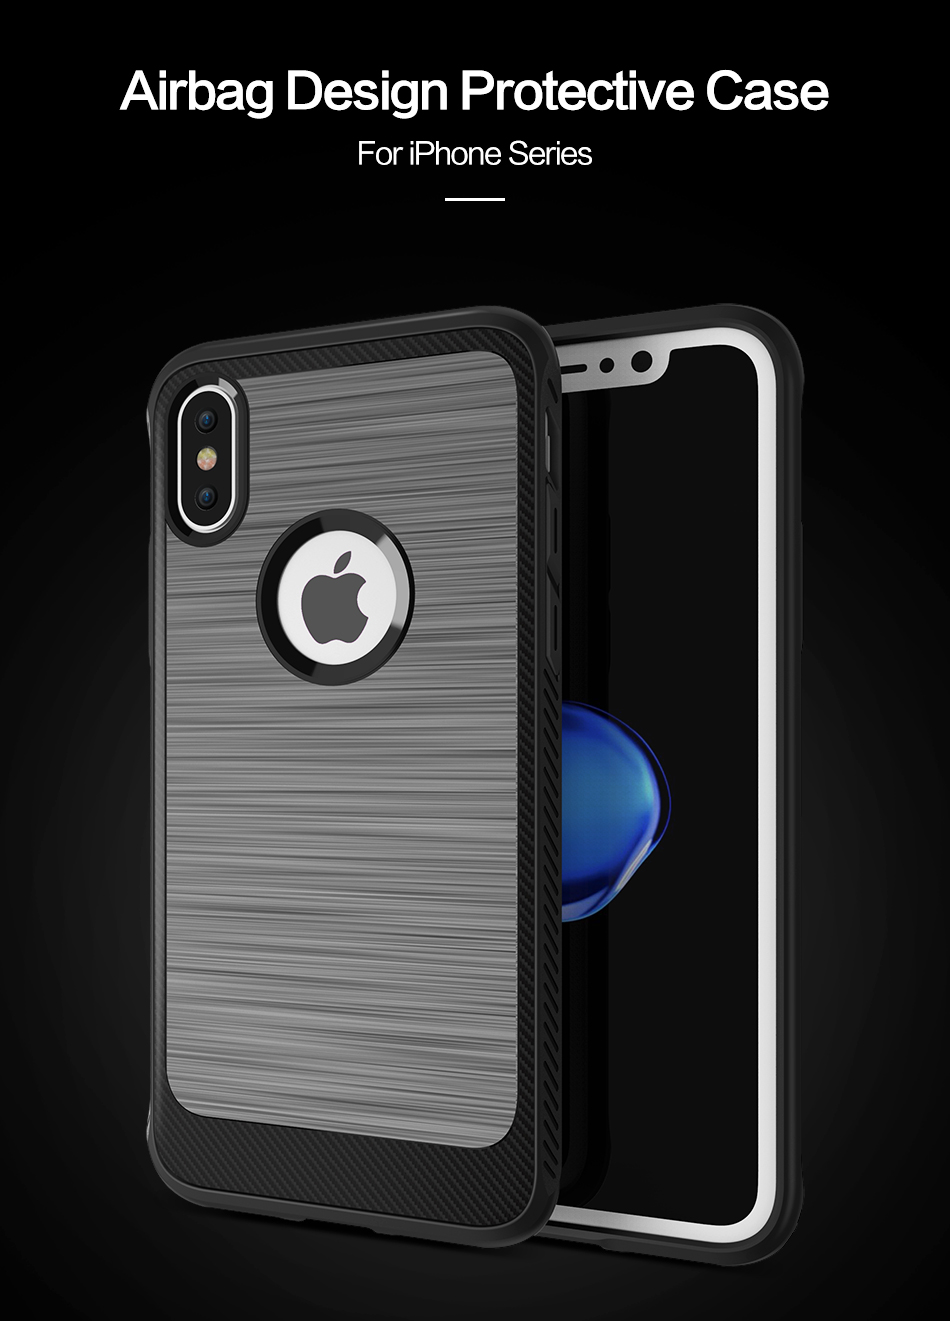 Luxury Shatterproof Cover For iPhone8 Phone Case Soft TPU Edge Hard PC i8 i 8 Case For Apple iPhone 8 Protective Accessories (1)